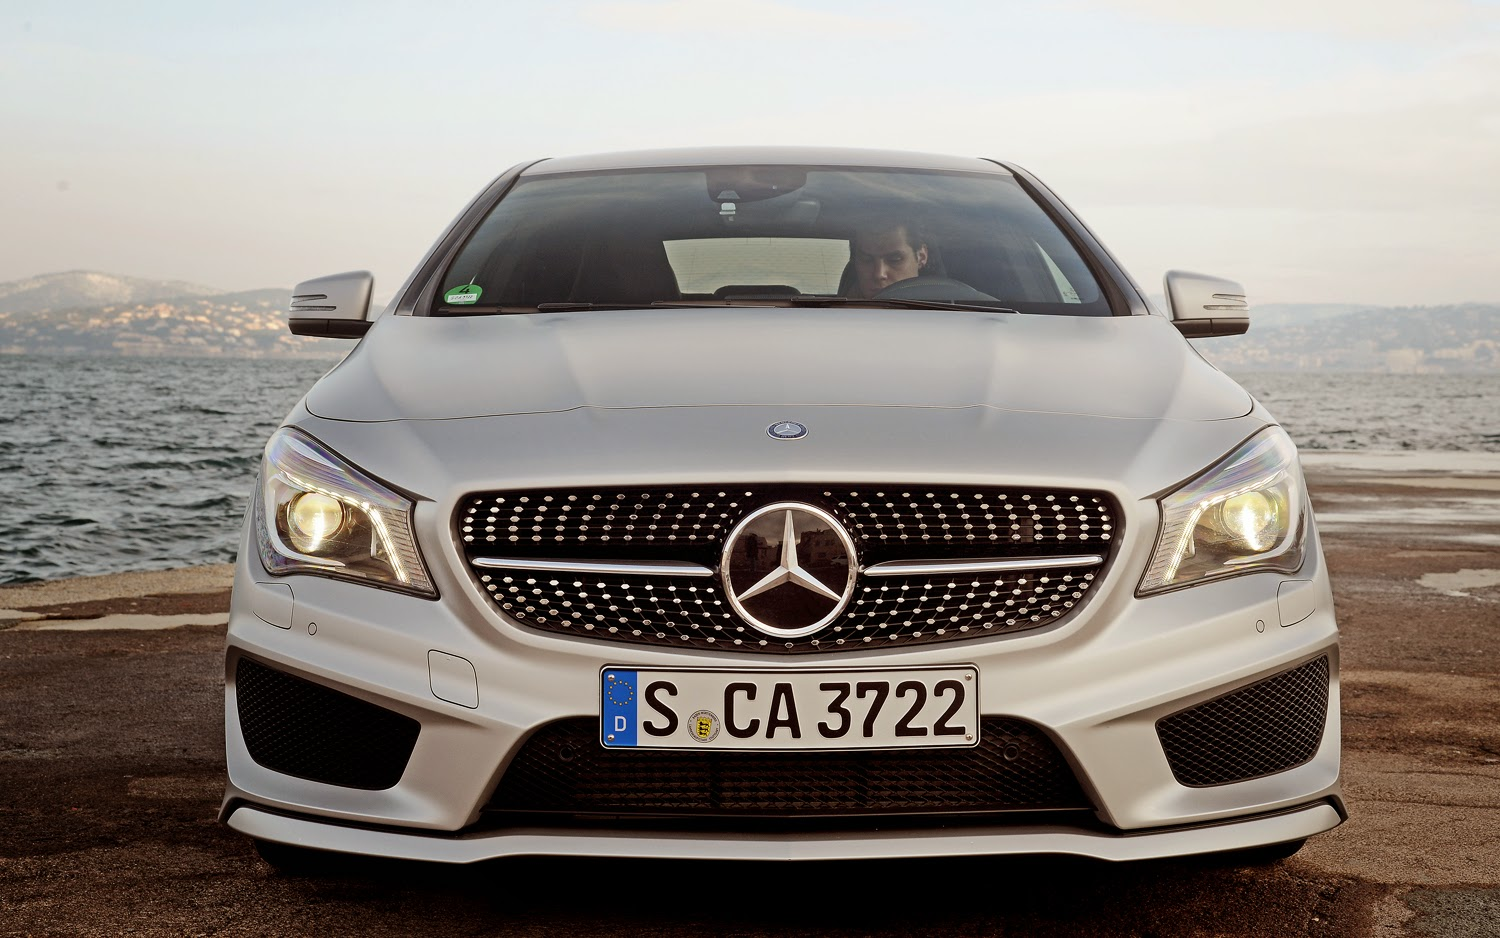 2014 Mercedes-Benz CLA250 - Review and Design | Up Cars